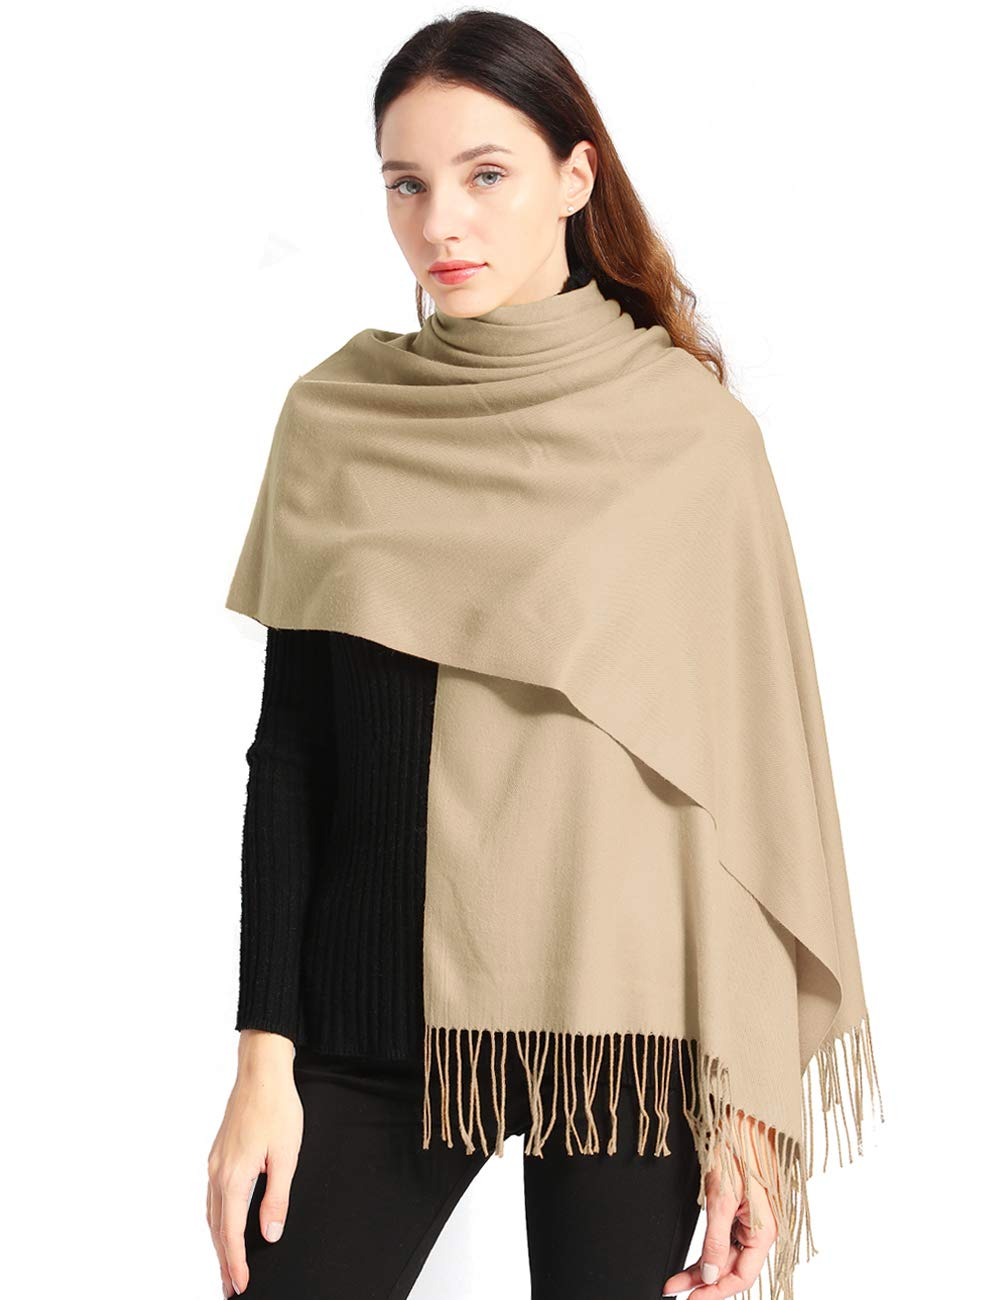 "Pashmina Scarf Women Soft Cashmere Scarves Stylish Large Warm Blanket Solid Winter Shawl Elegant Wrap 78.5""x27.5"""